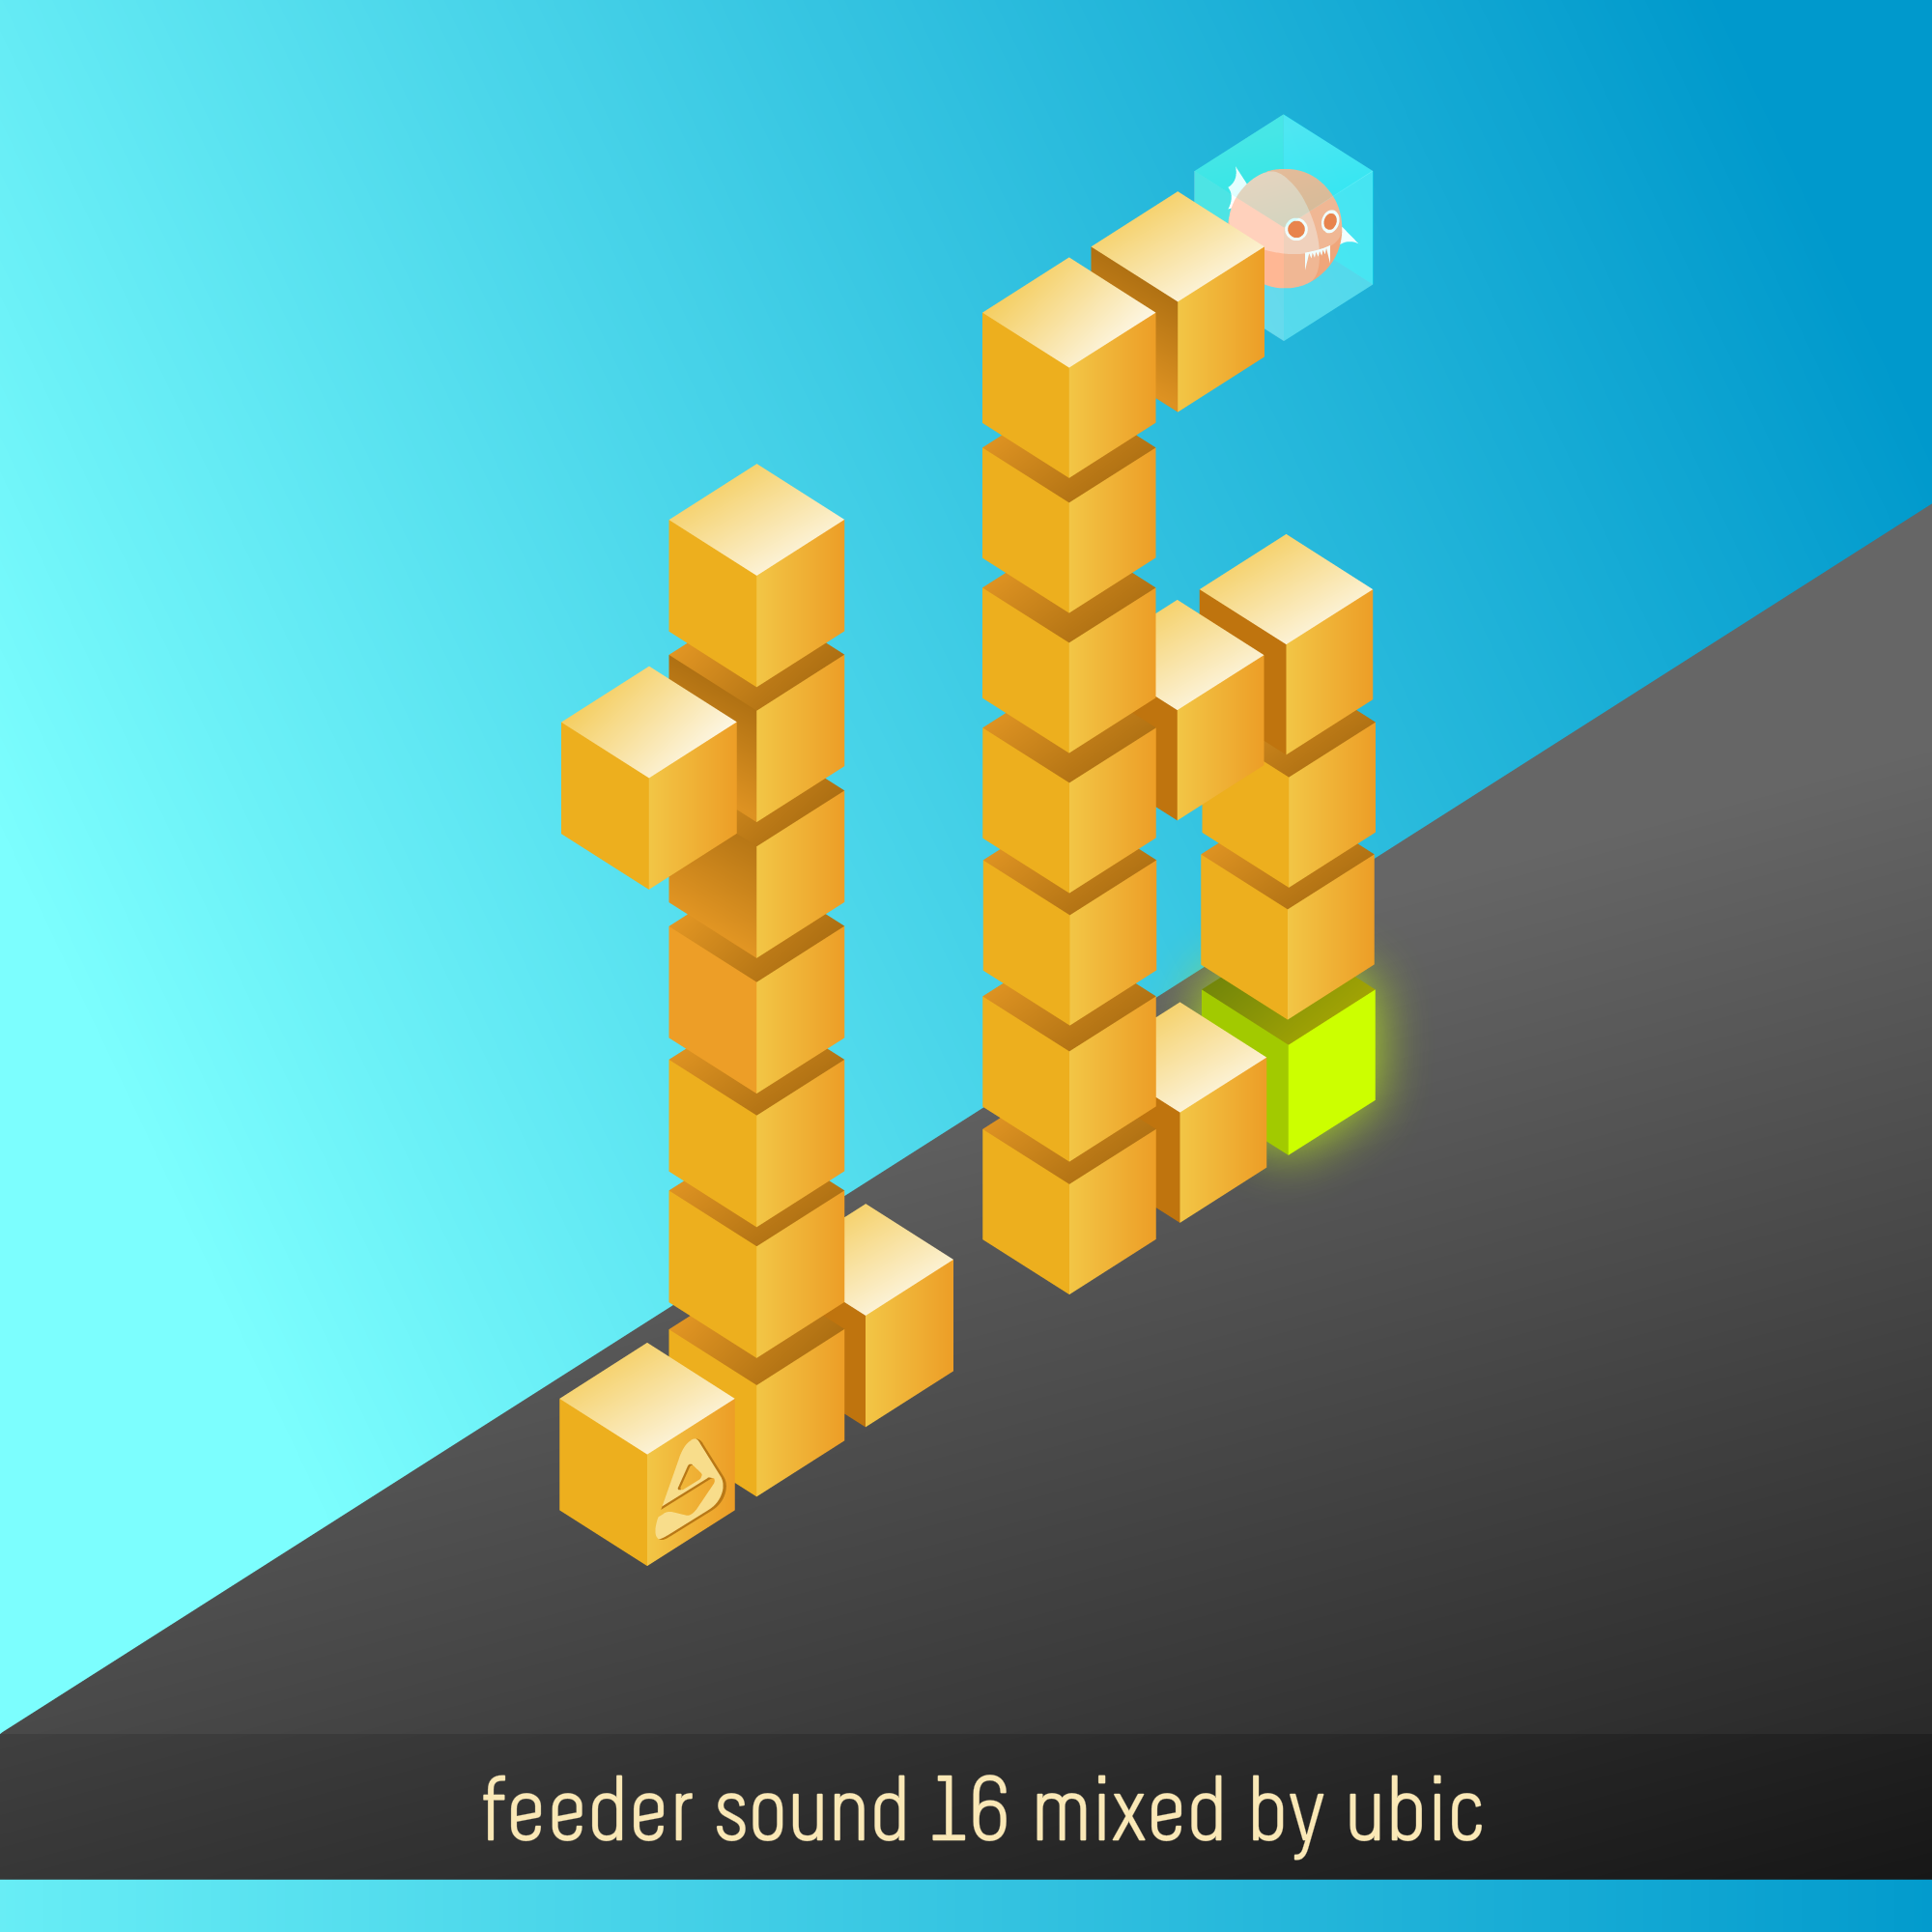 feeder sound 16 mixed by ubic